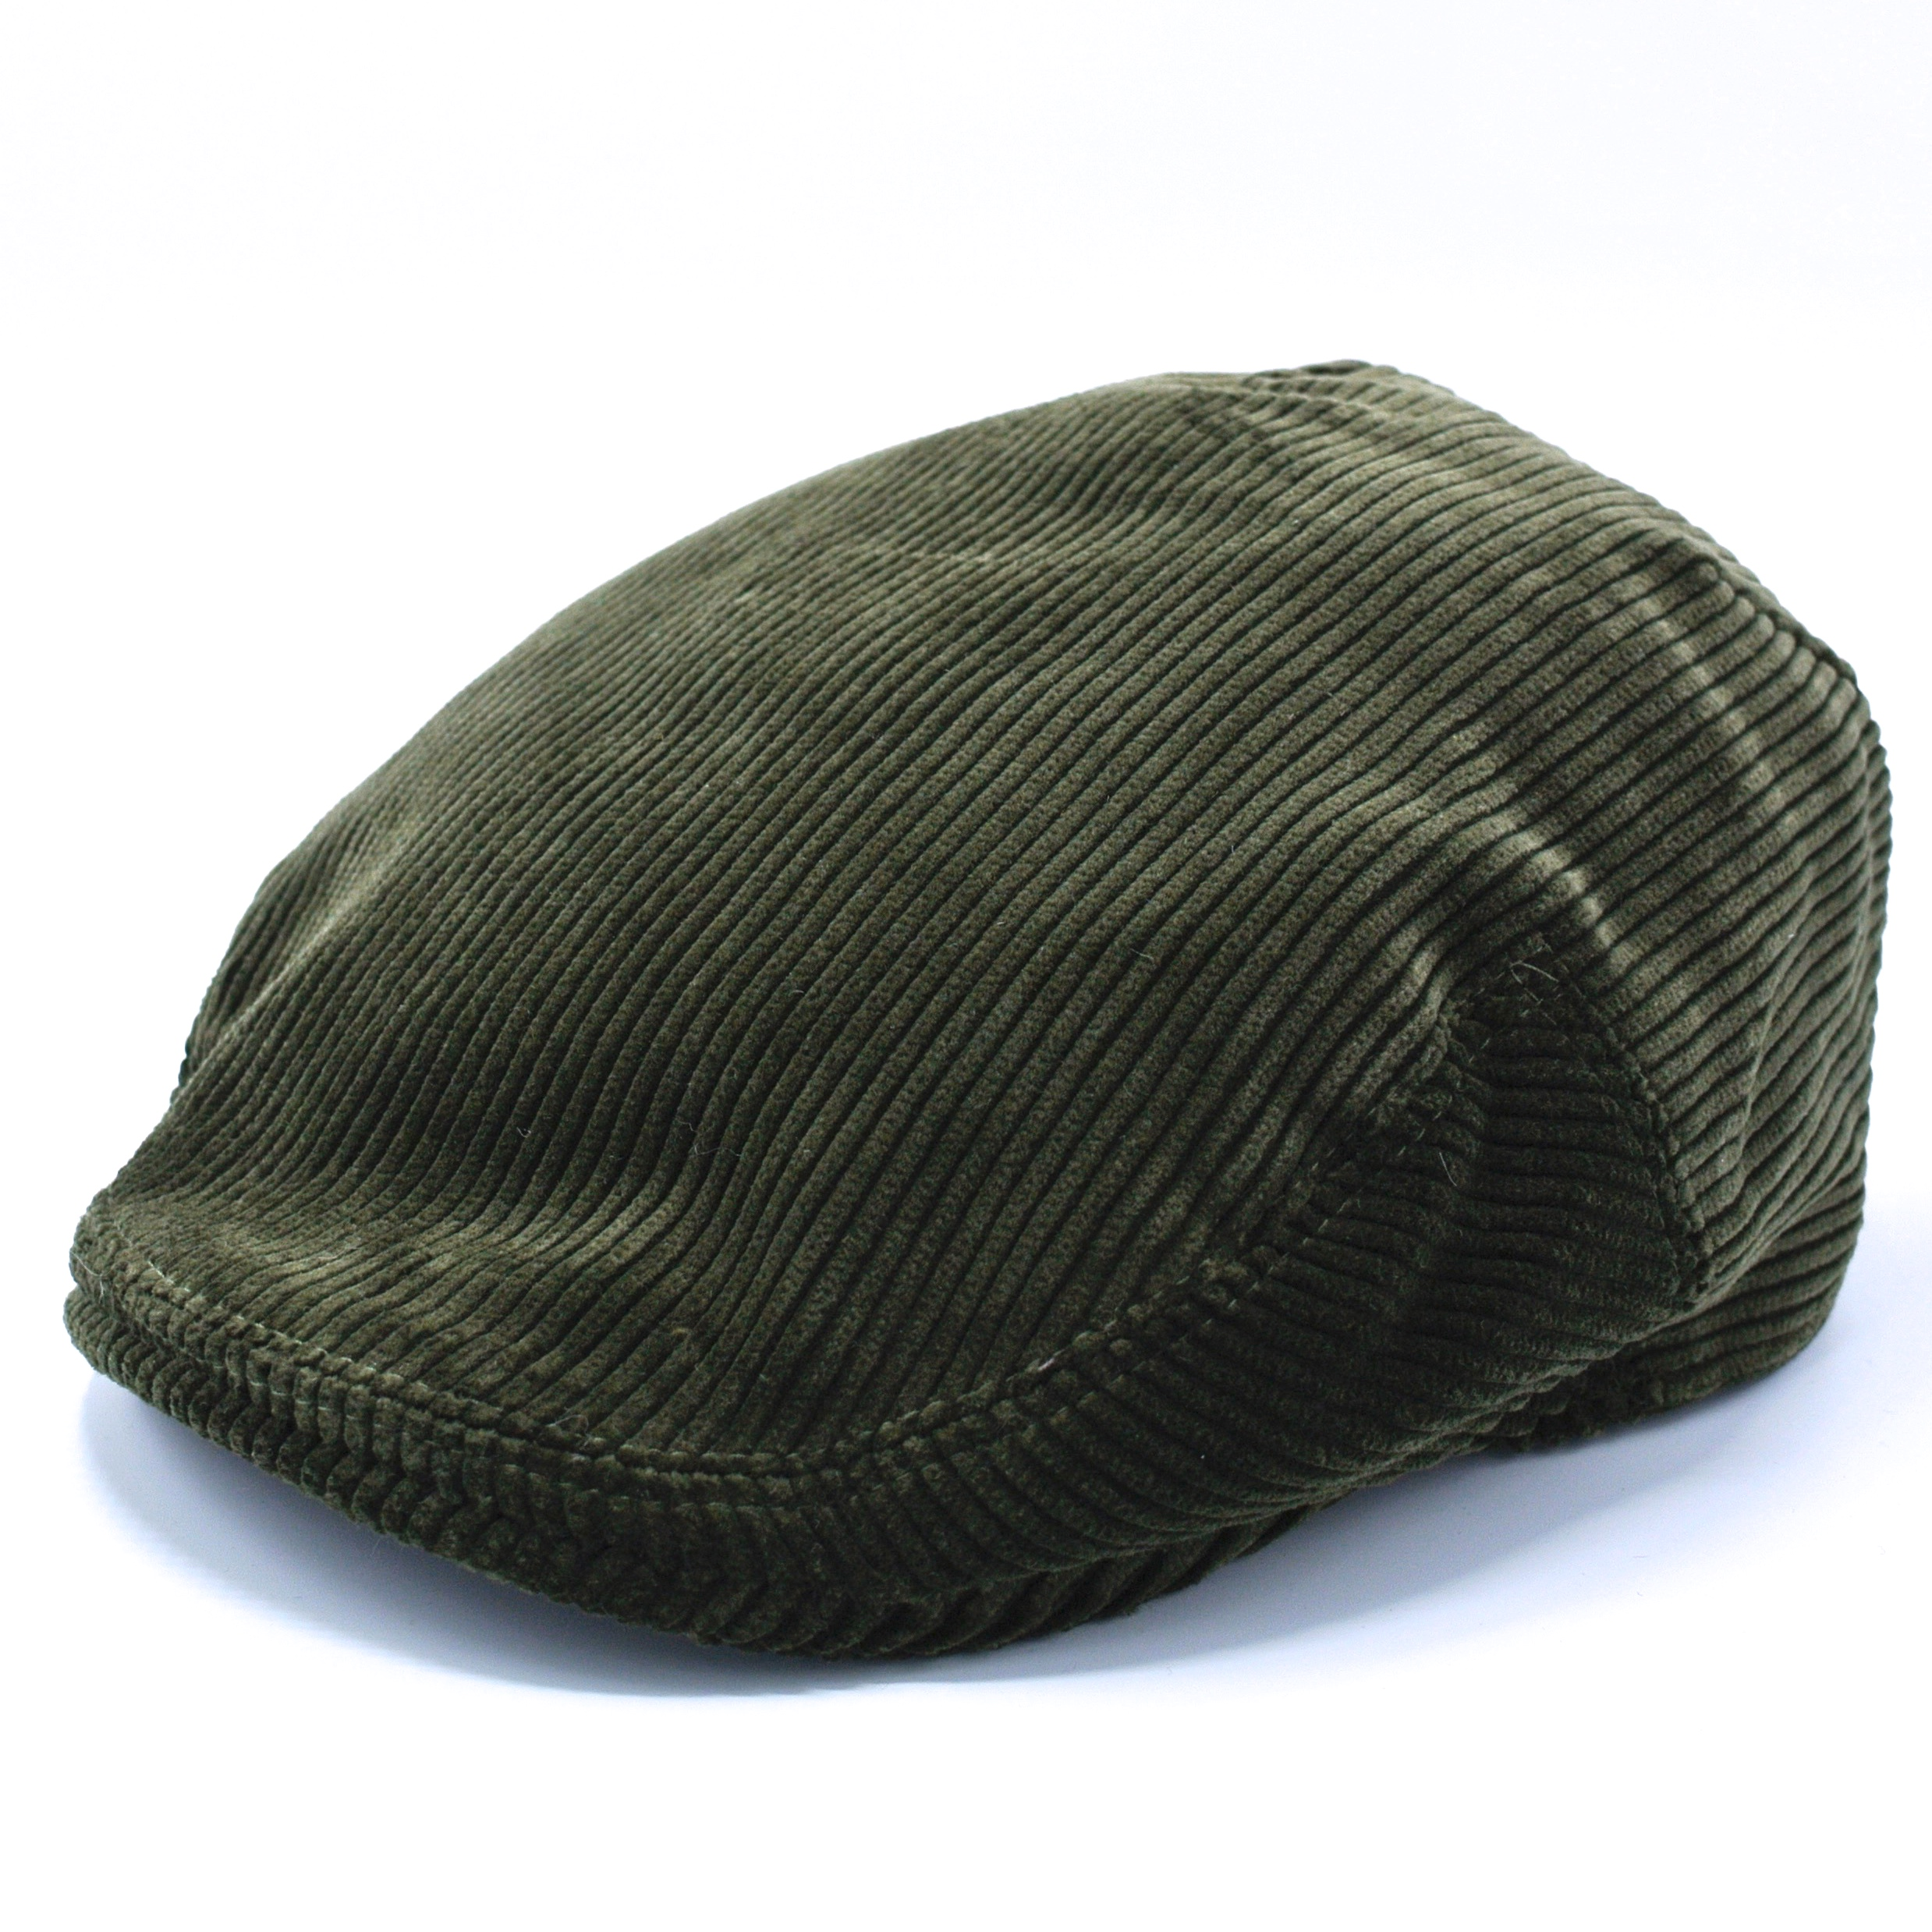 Lawrens and Foster Flat Cap Green Cord